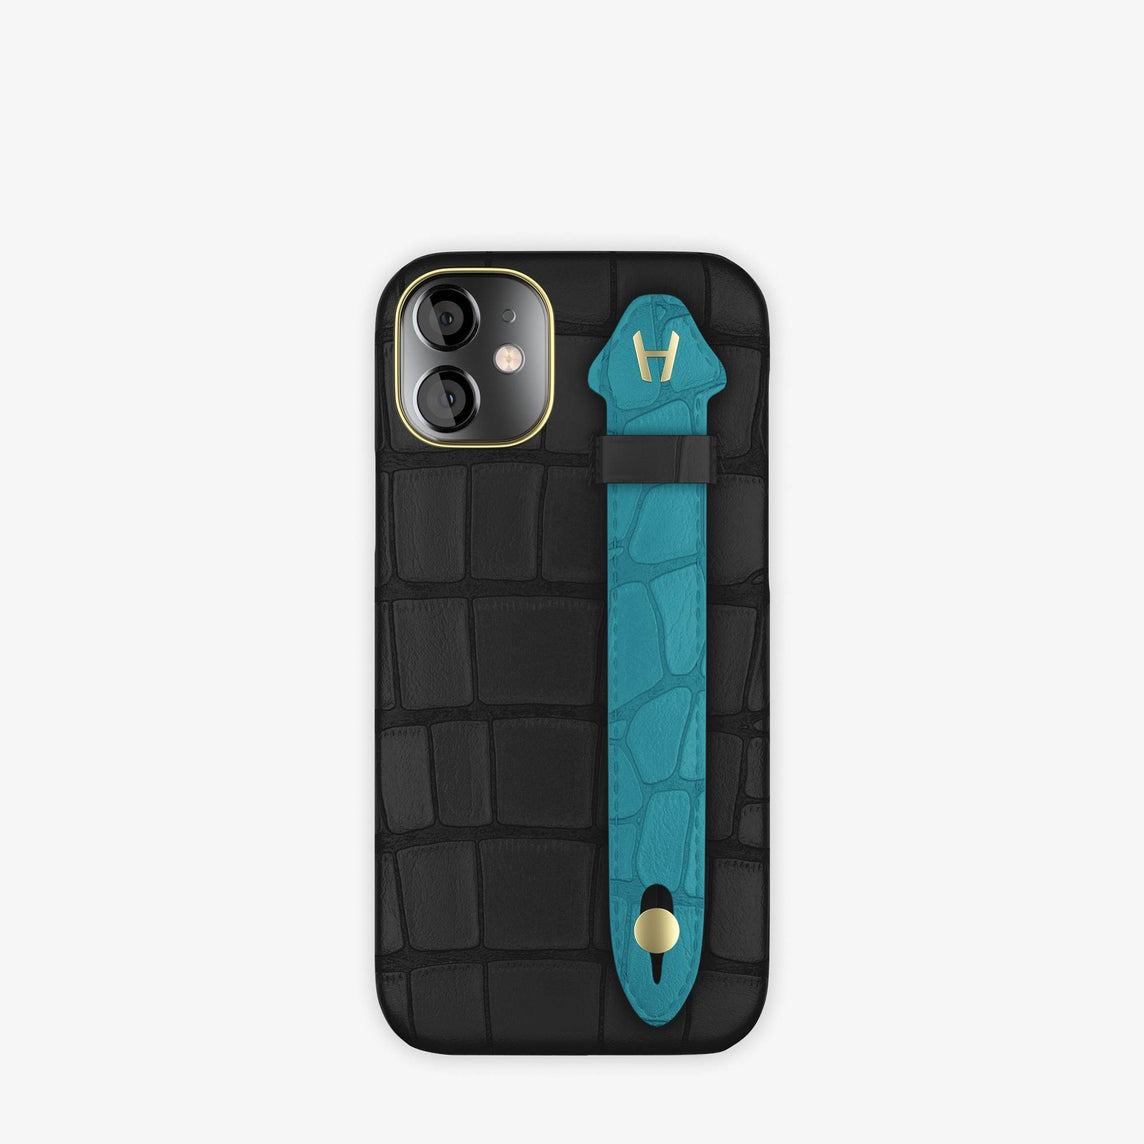 Alligator Side Finger Case iPhone 12 Mini | Black/Blue Teal -Yellow Gold